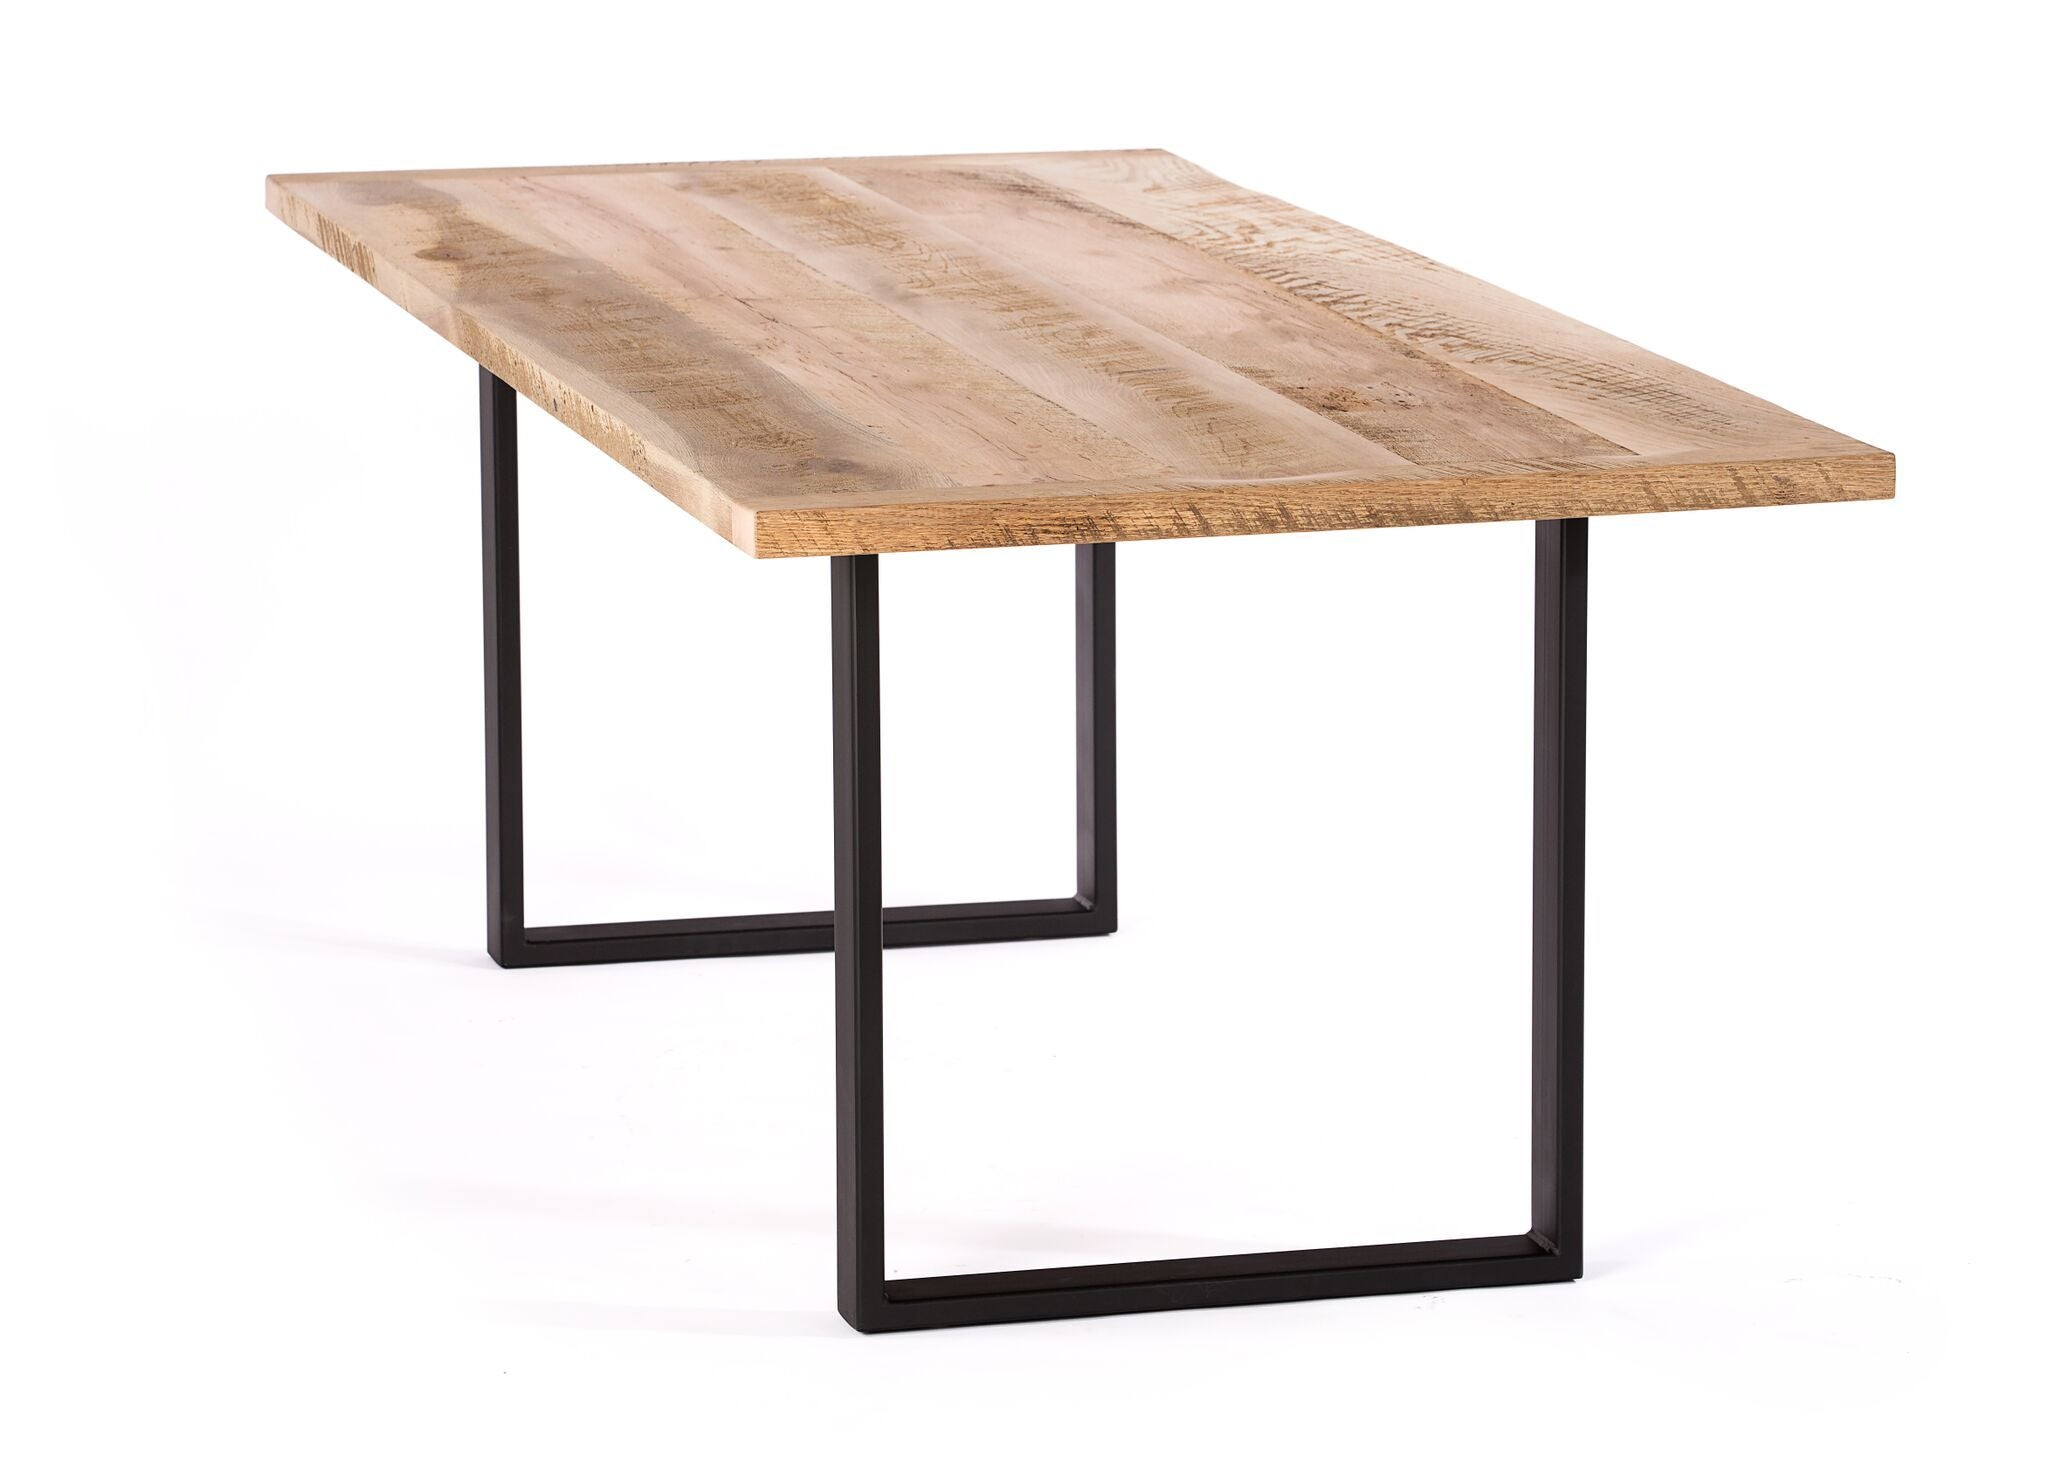 "Rectangular Wood Tables | Maddox Table | Ash | Ash | CUSTOM SIZE L 55 W 30 H 30 | 1.5"" Standard kingston-krafts-zinc-tables."